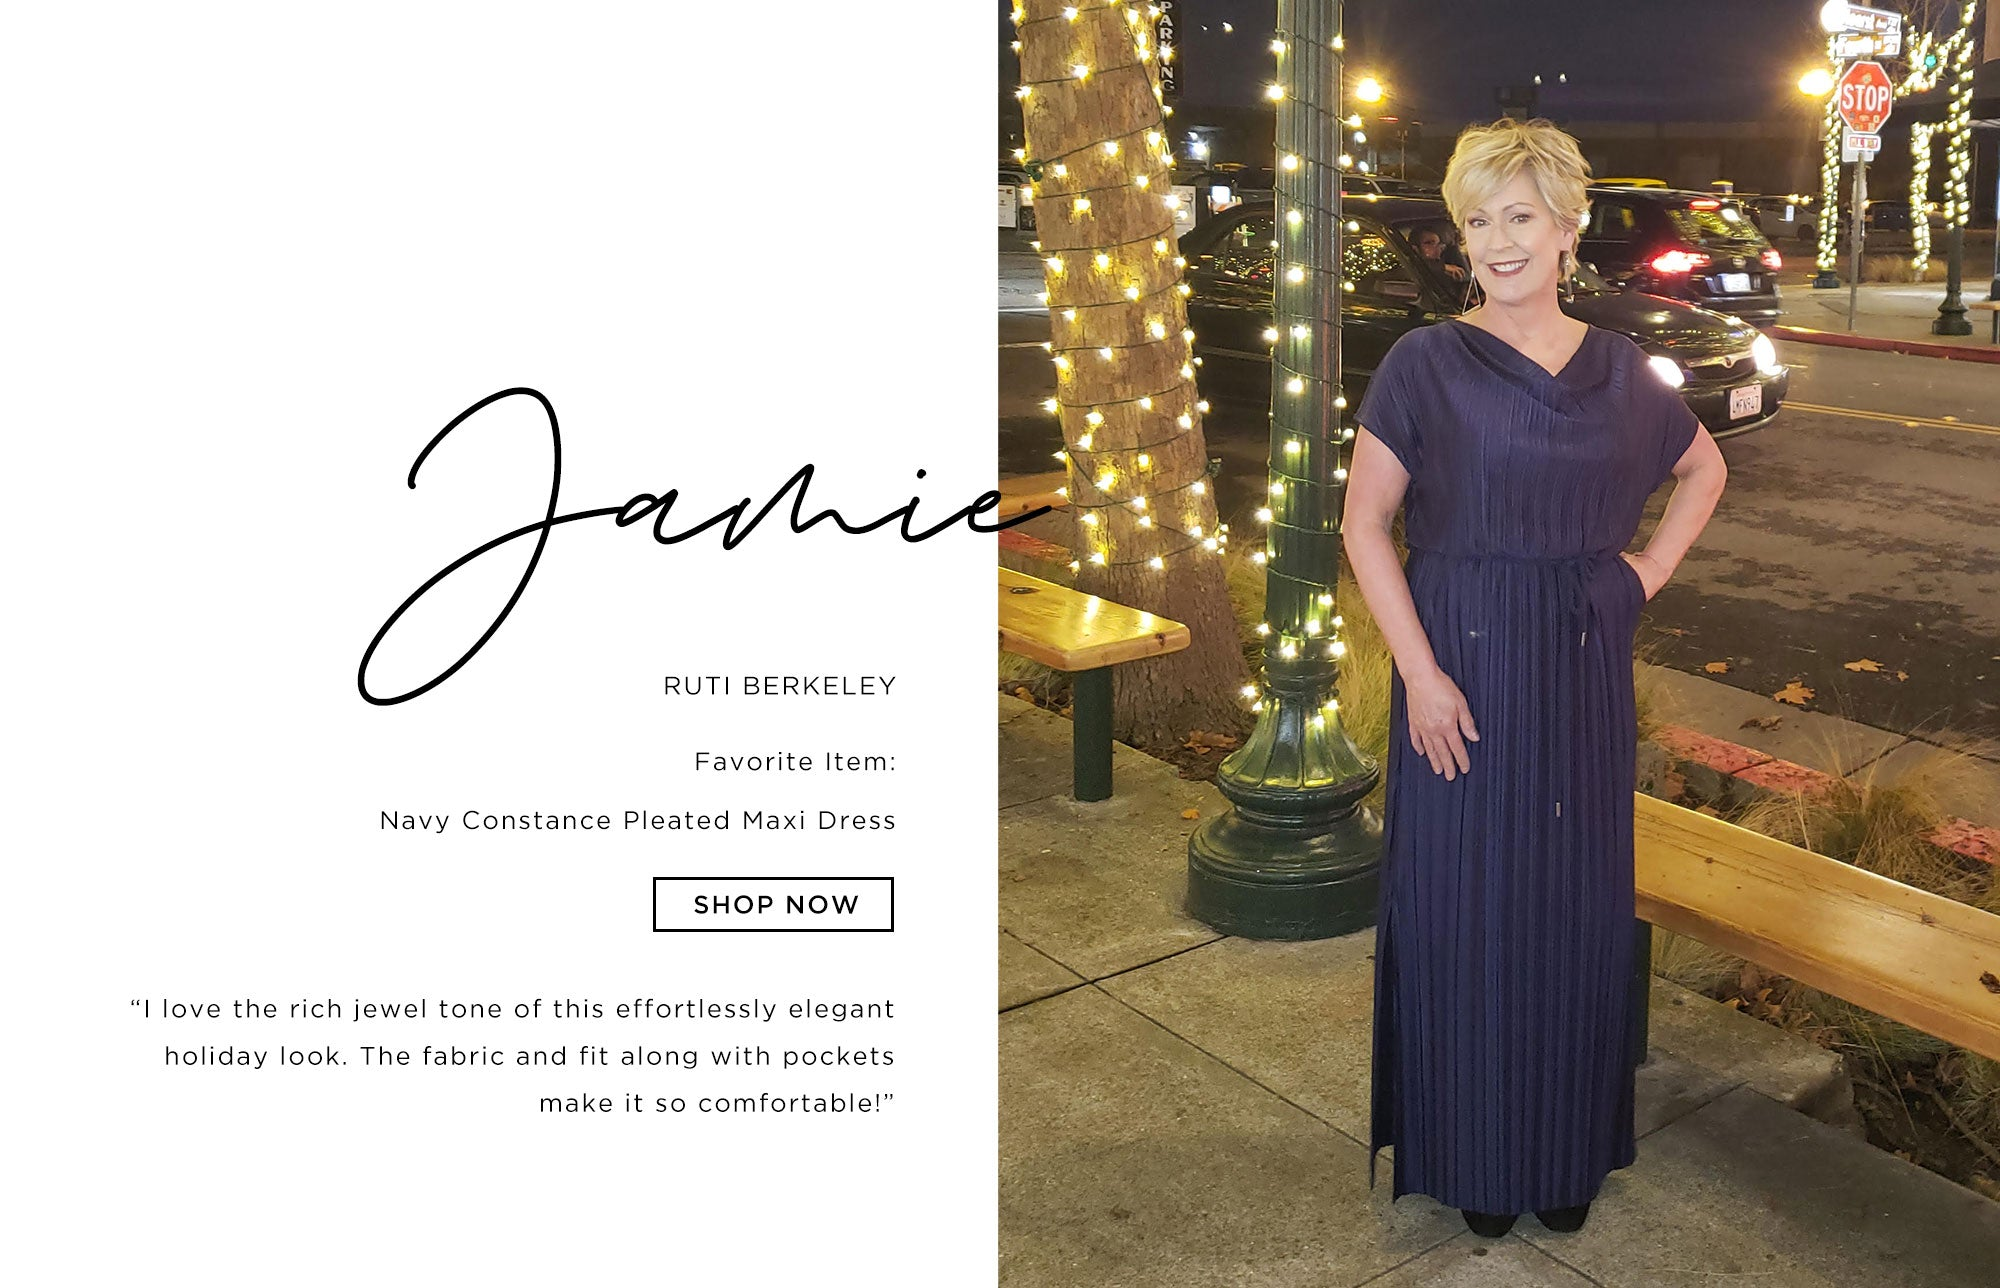 Jamie Ruti Berkeley   I love the rich jewel tone of this effortlessly elegant holiday look. The fabric and fit along with pockets make it so comfortable!